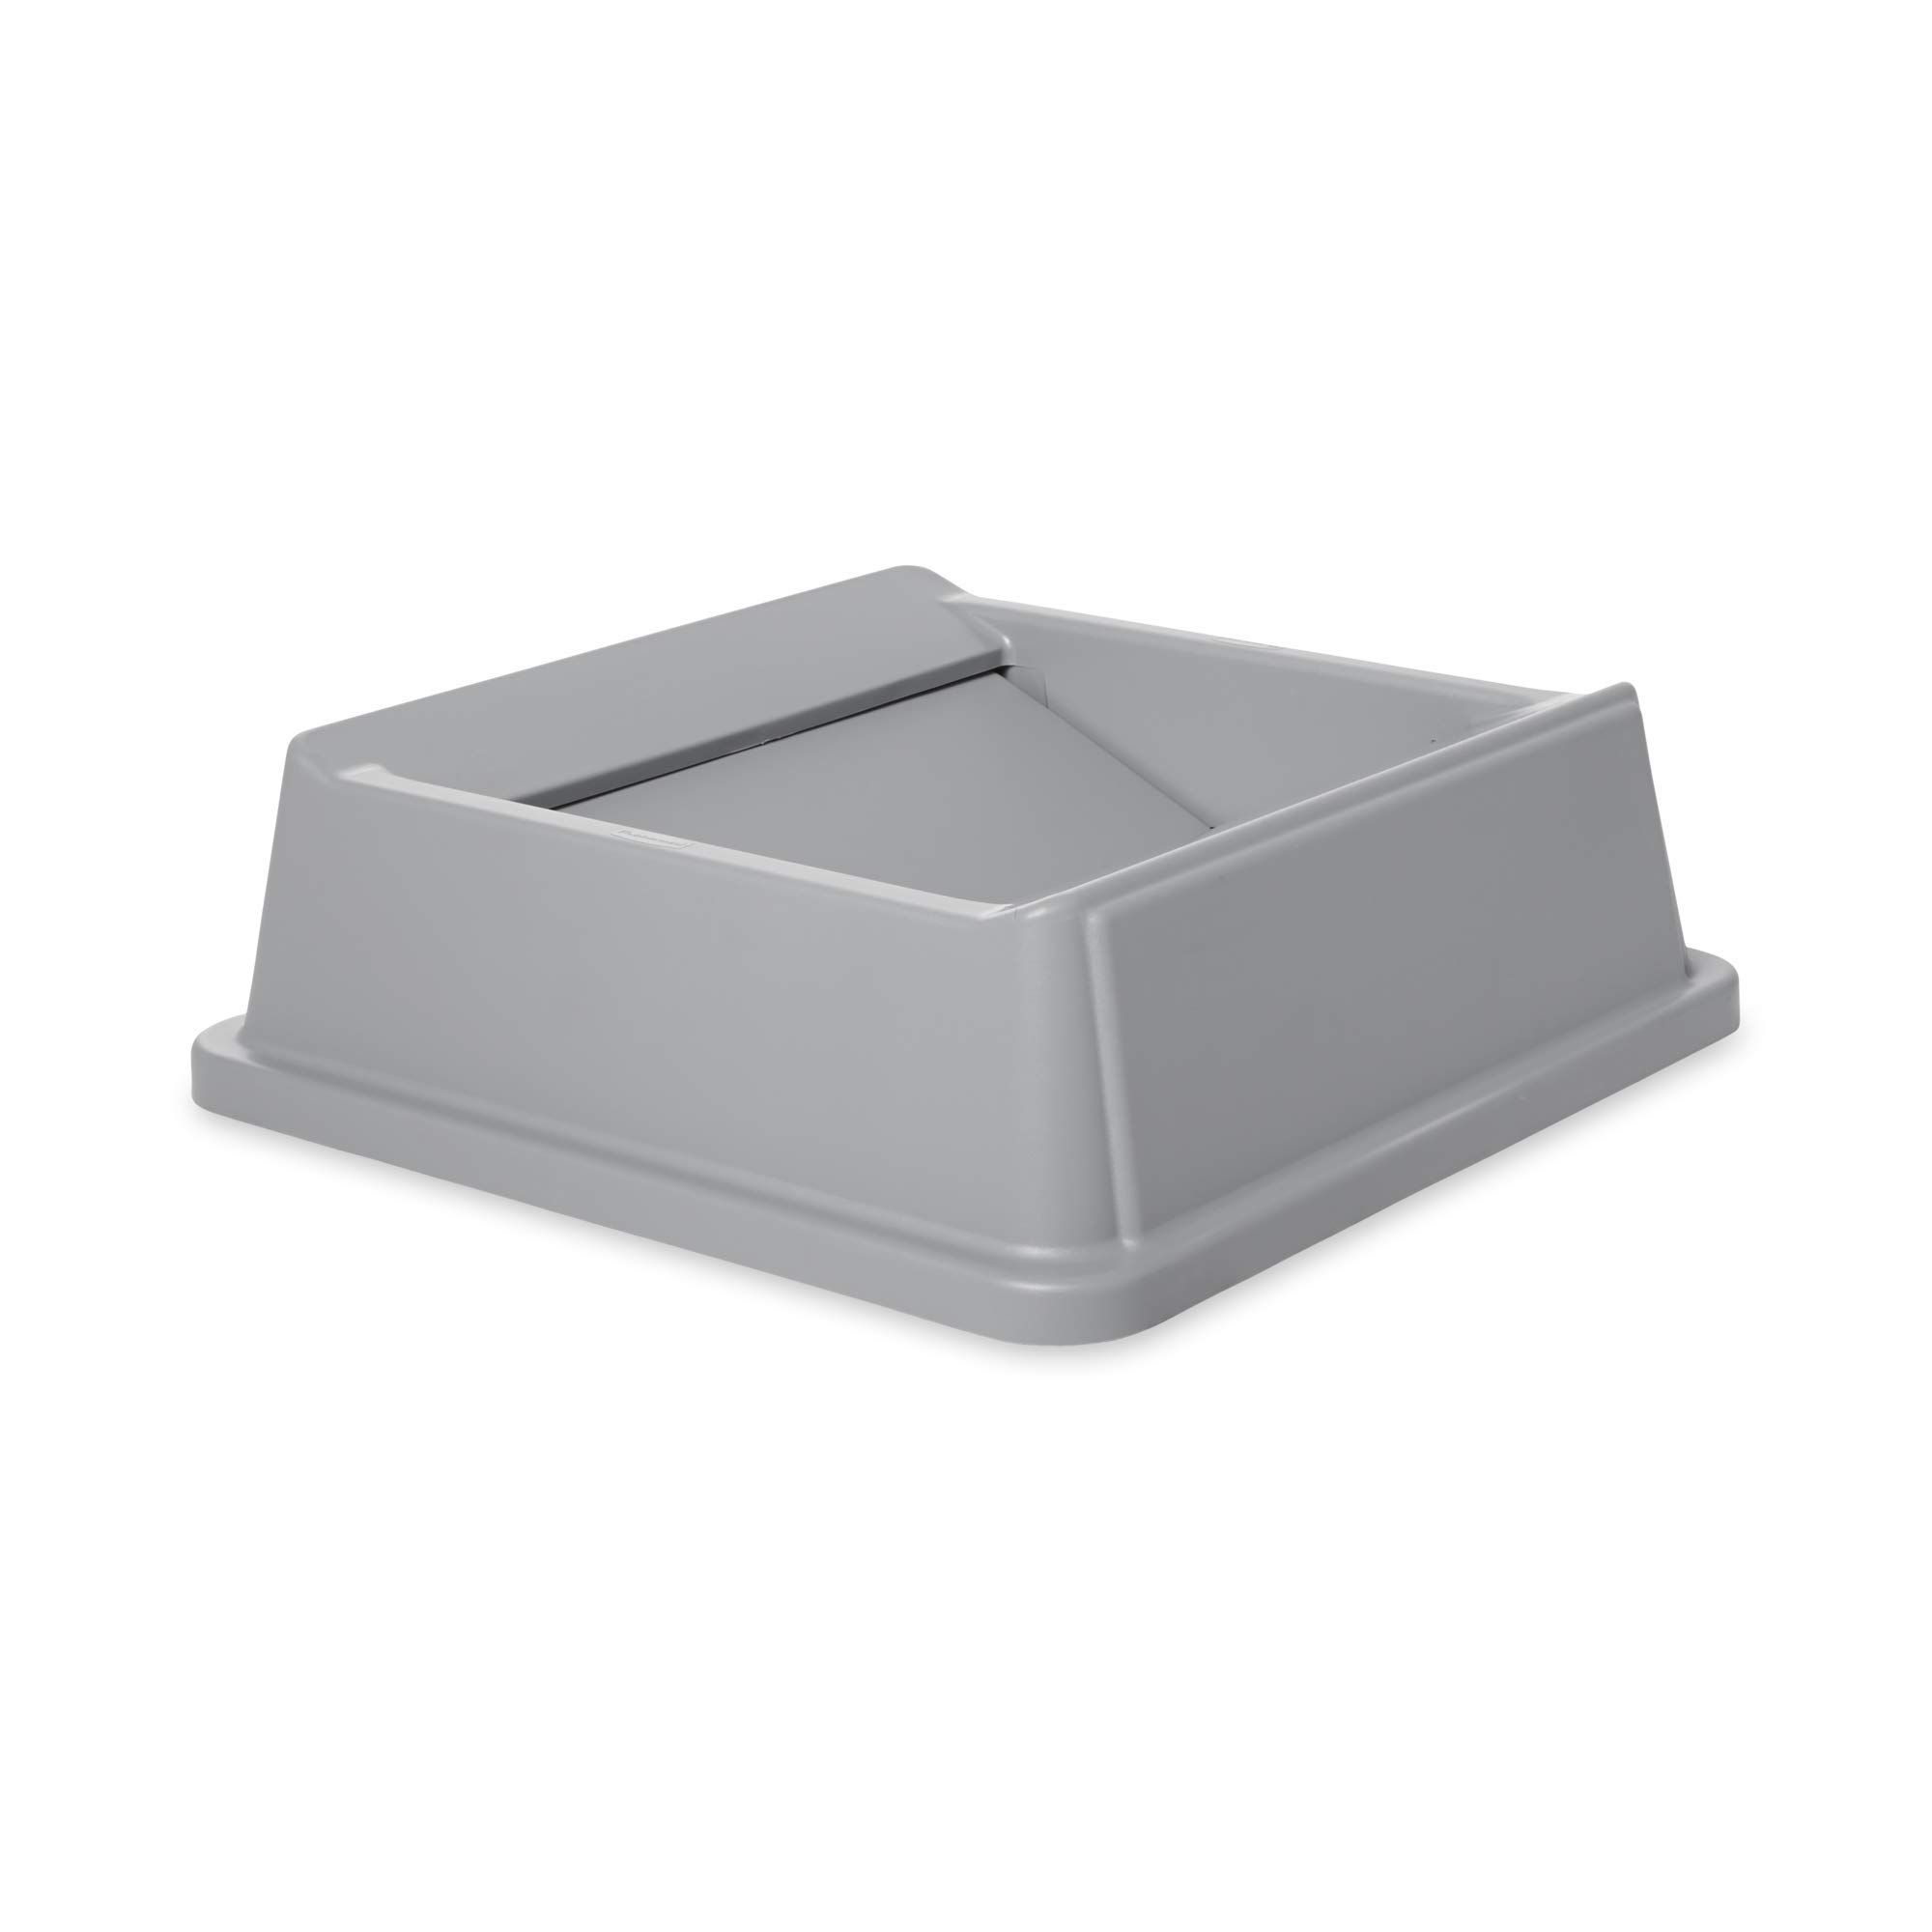 Rubbermaid Commercial Products Untouchable Square Swing Lid for 35G & 50G Containers, Gray (FG266400GRAY) by Rubbermaid Commercial Products